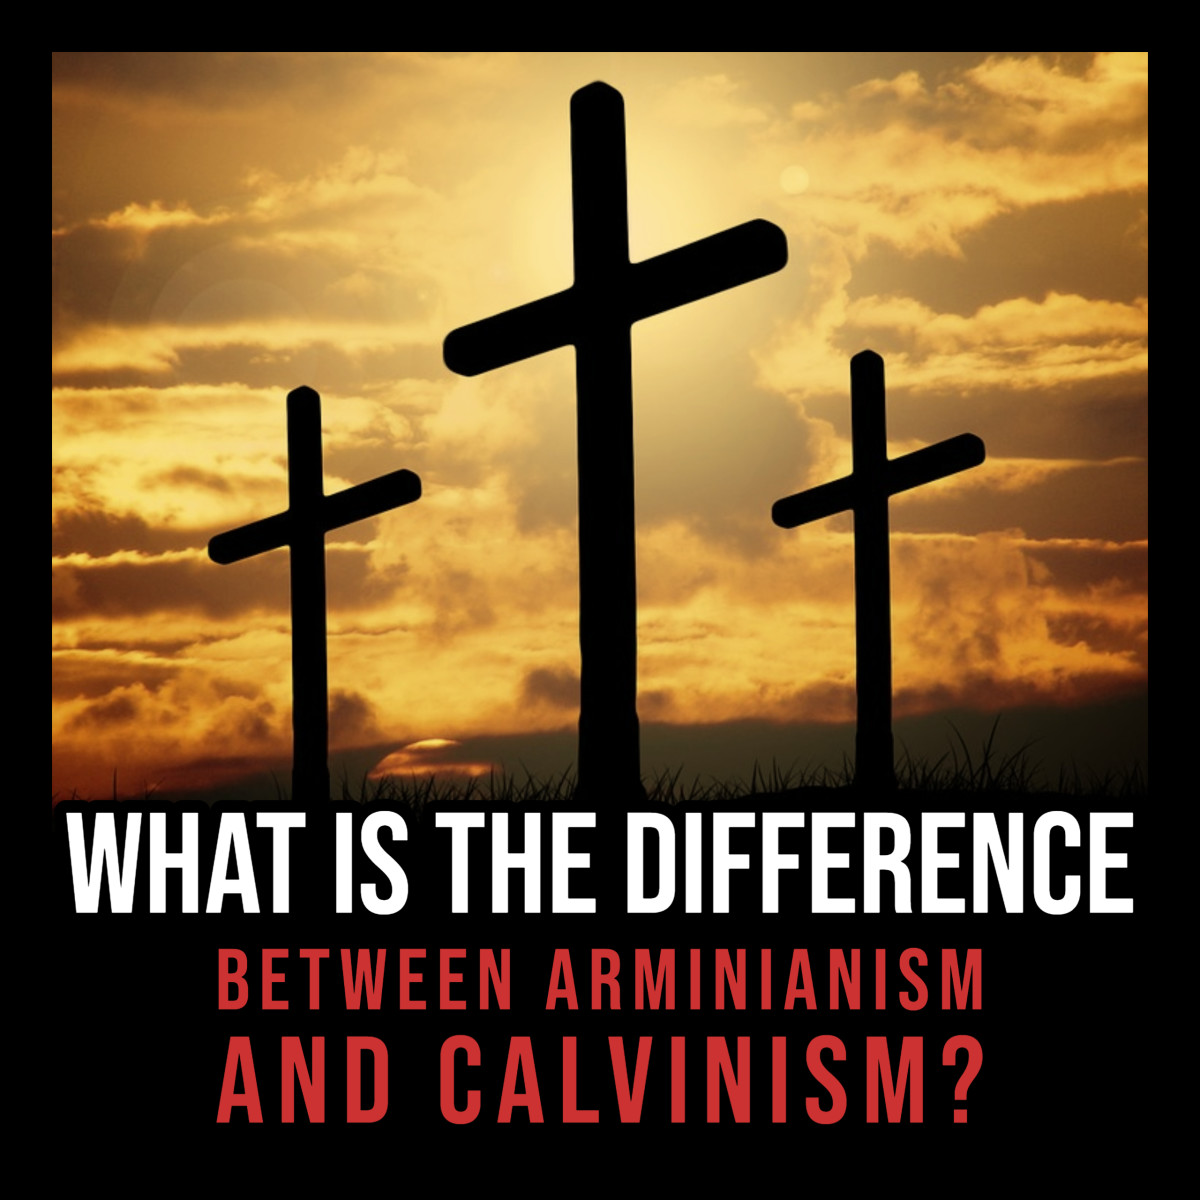 What is the difference between Arminianism and Calvinism?